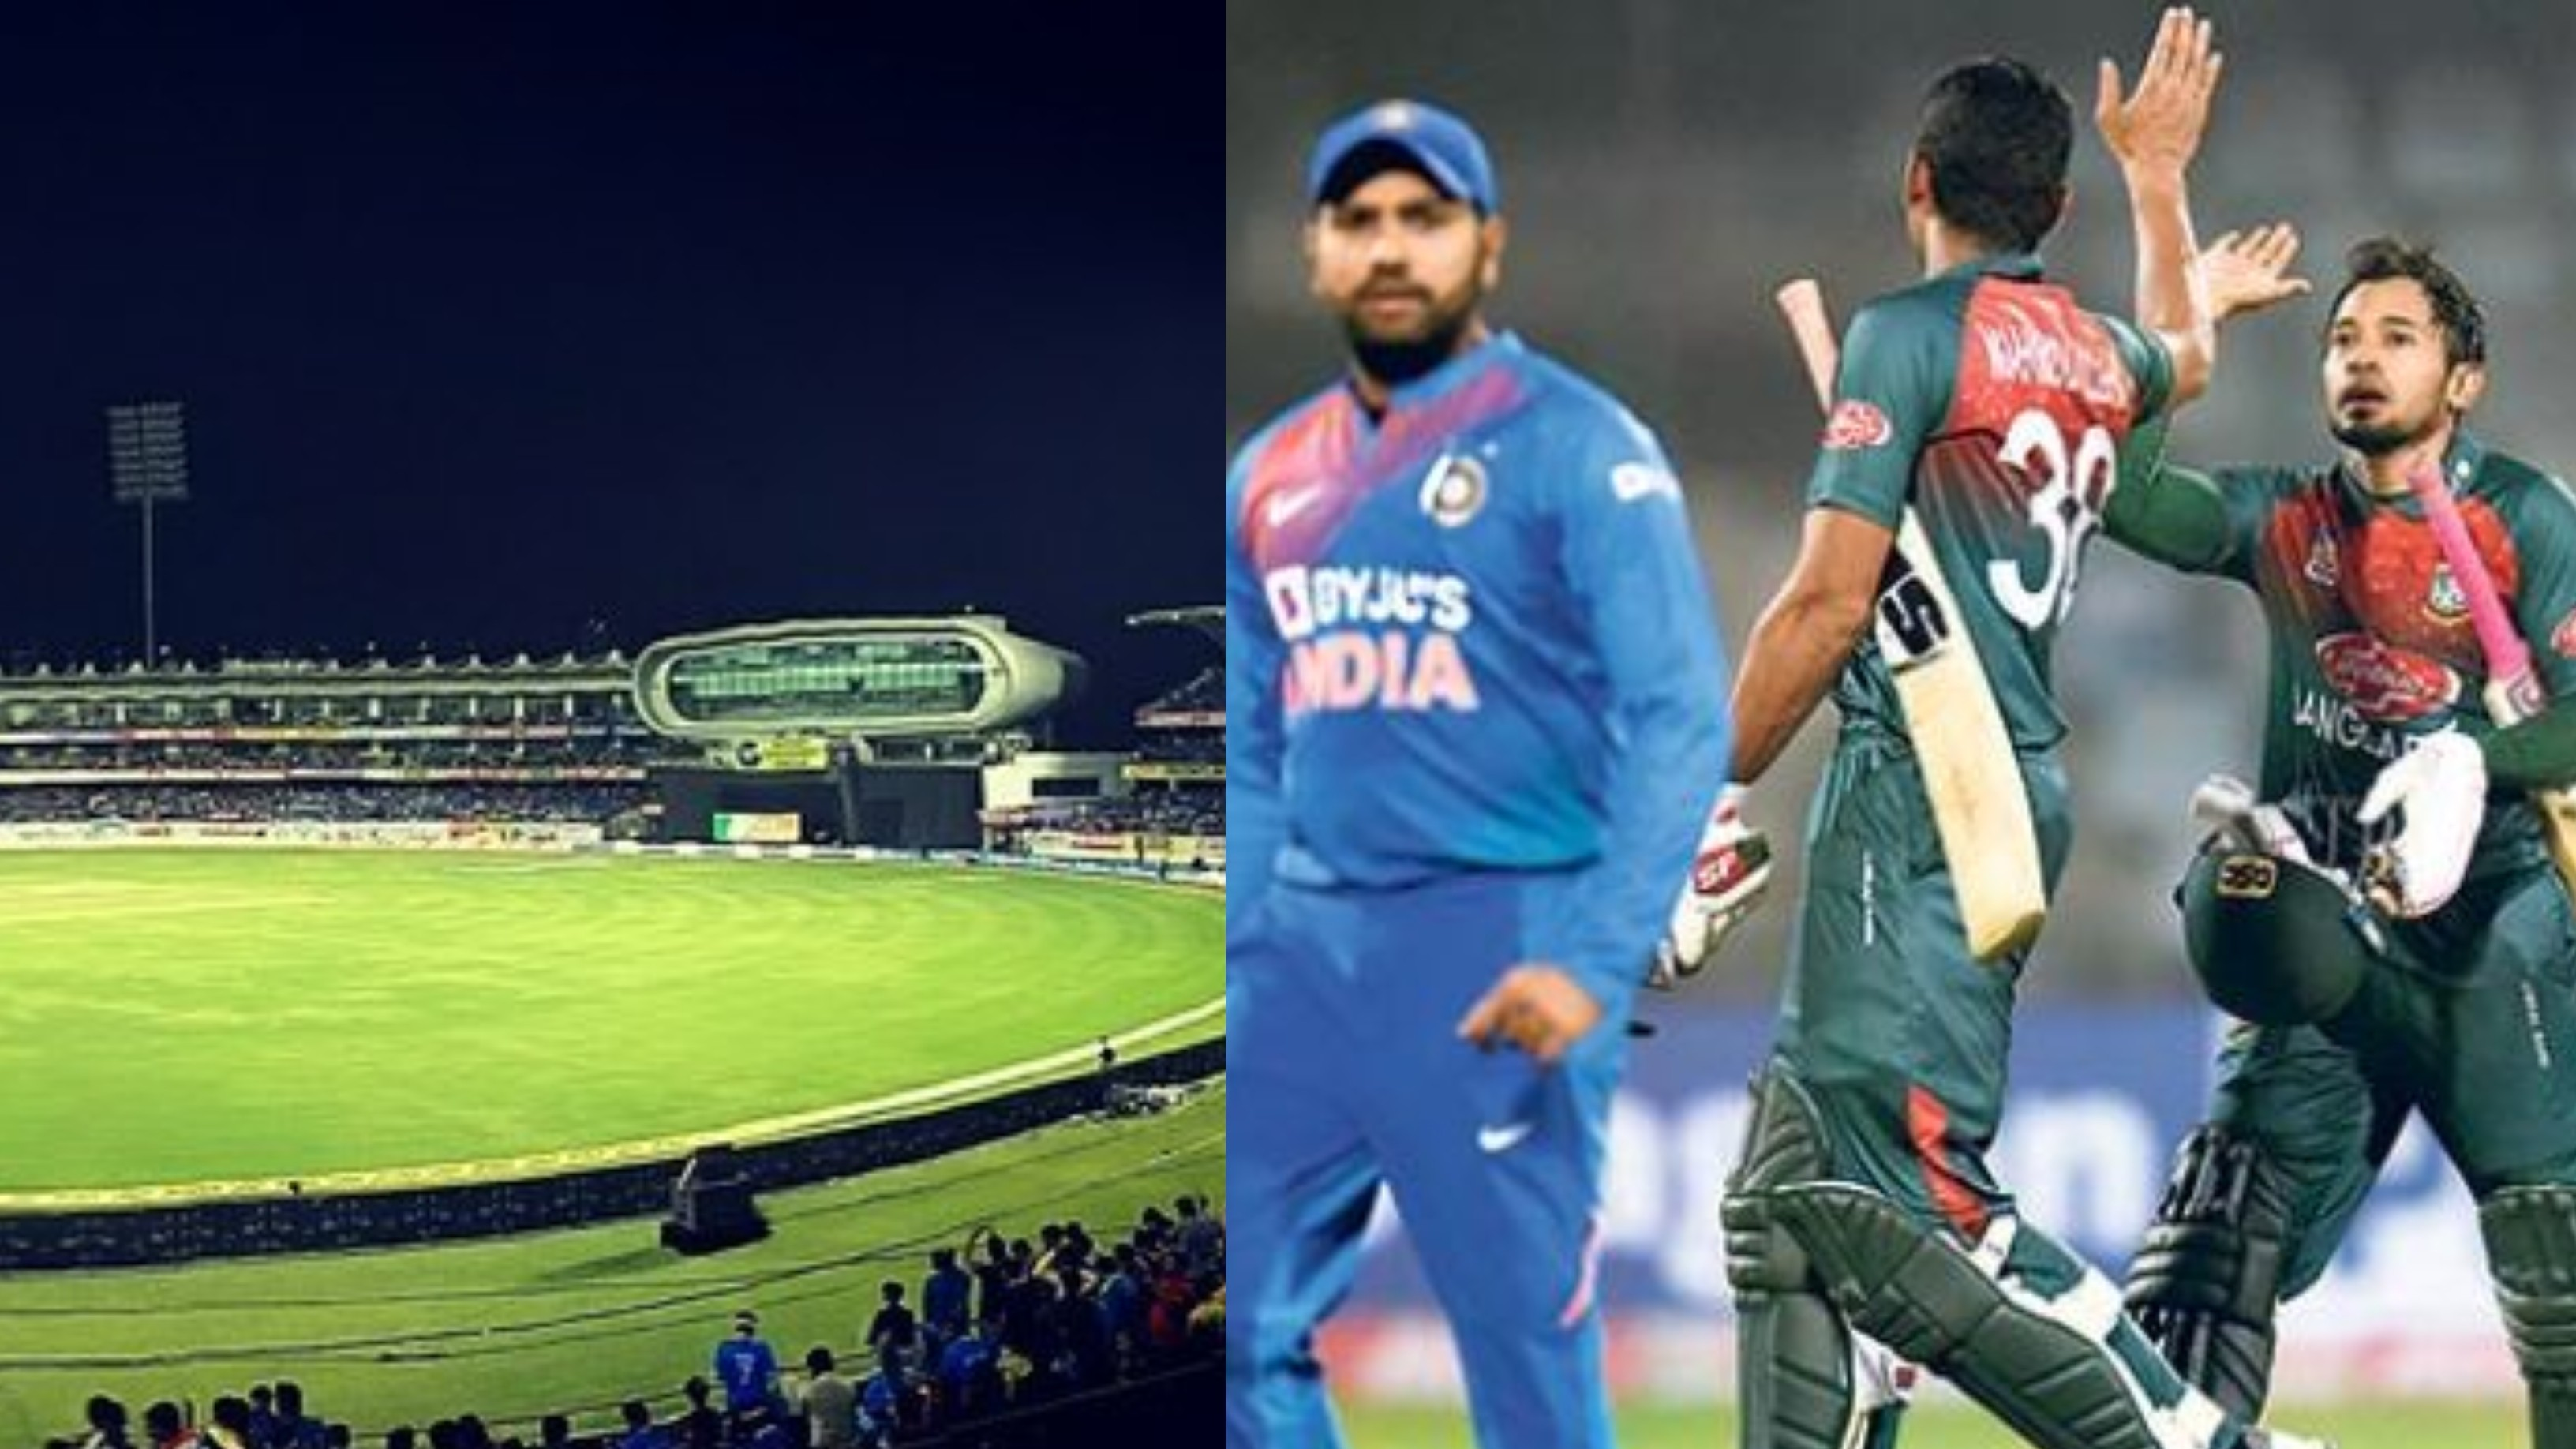 IND v BAN 2019: Saurashtra fully prepared to host second T20I despite cyclone Maha threat in Rajkot